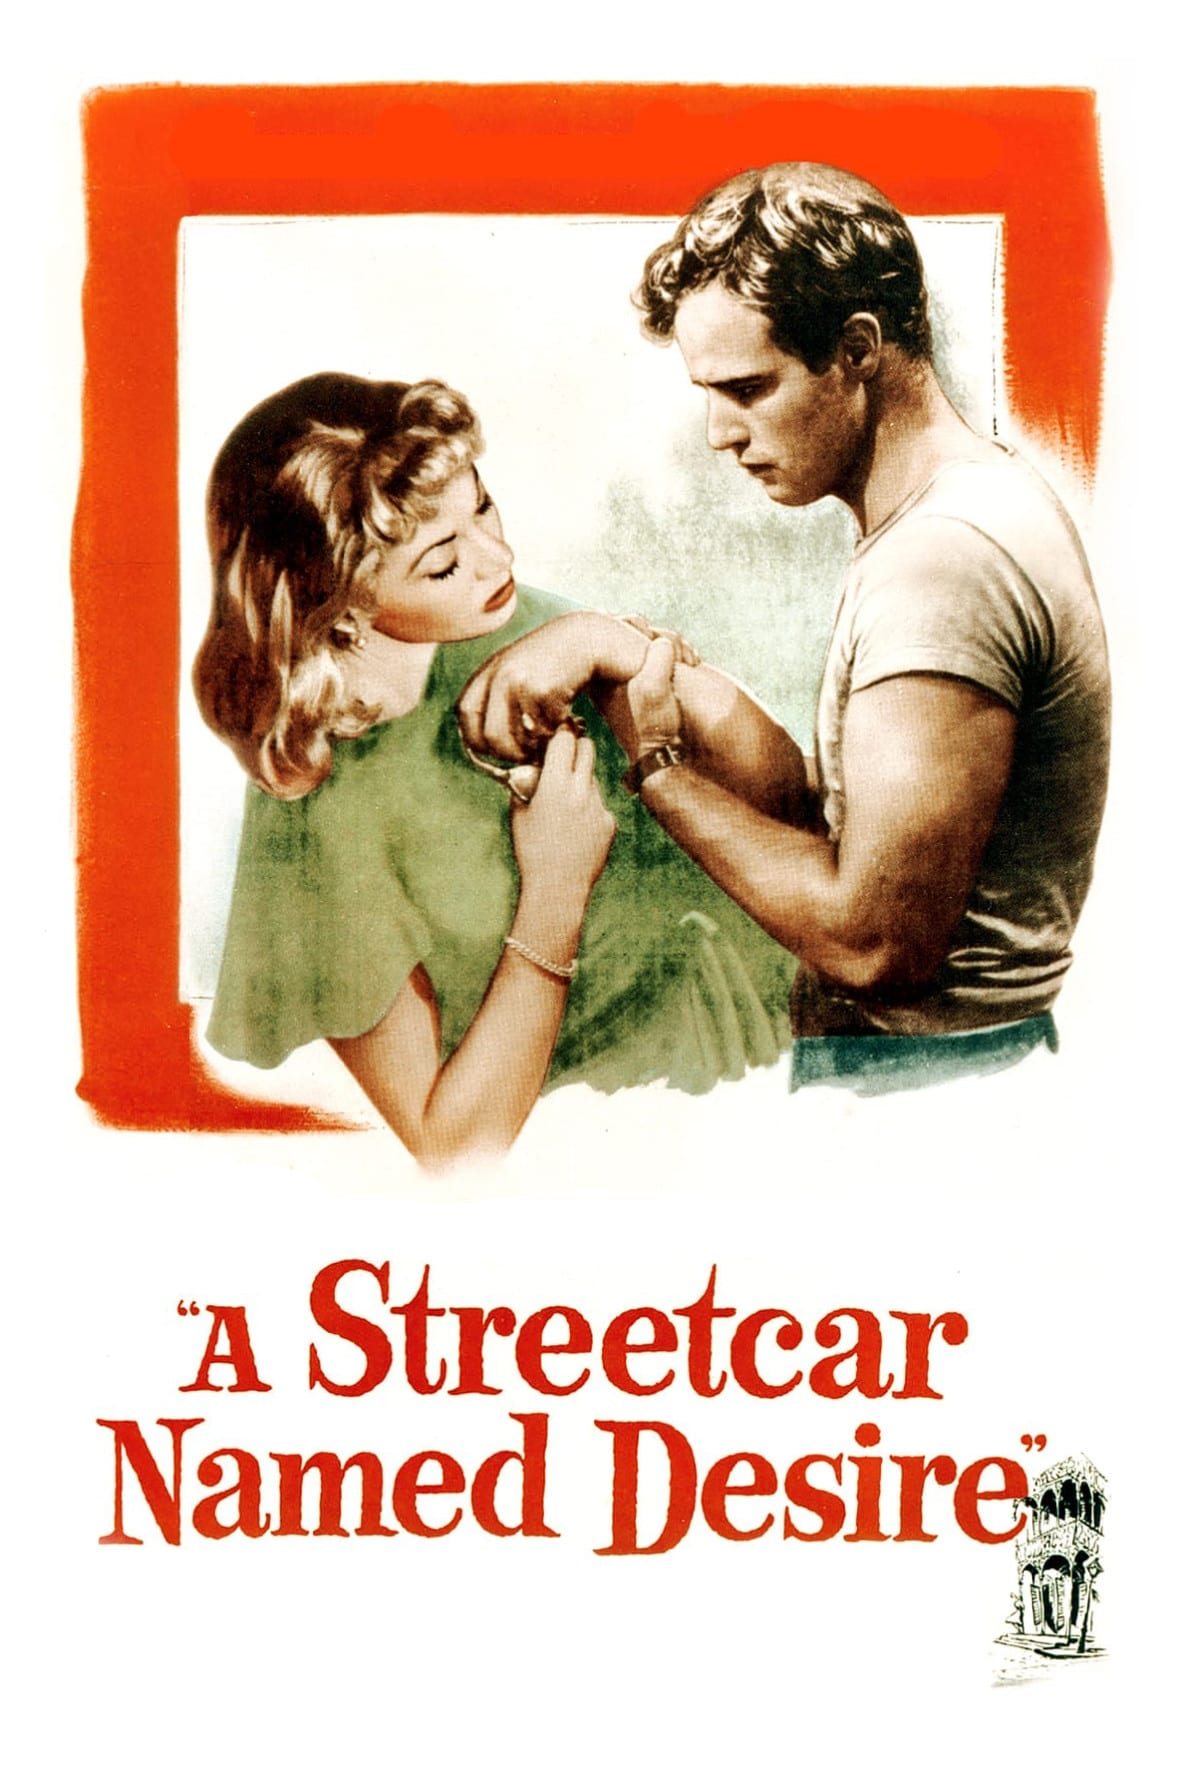 A Streetcar Named Desire (1951)